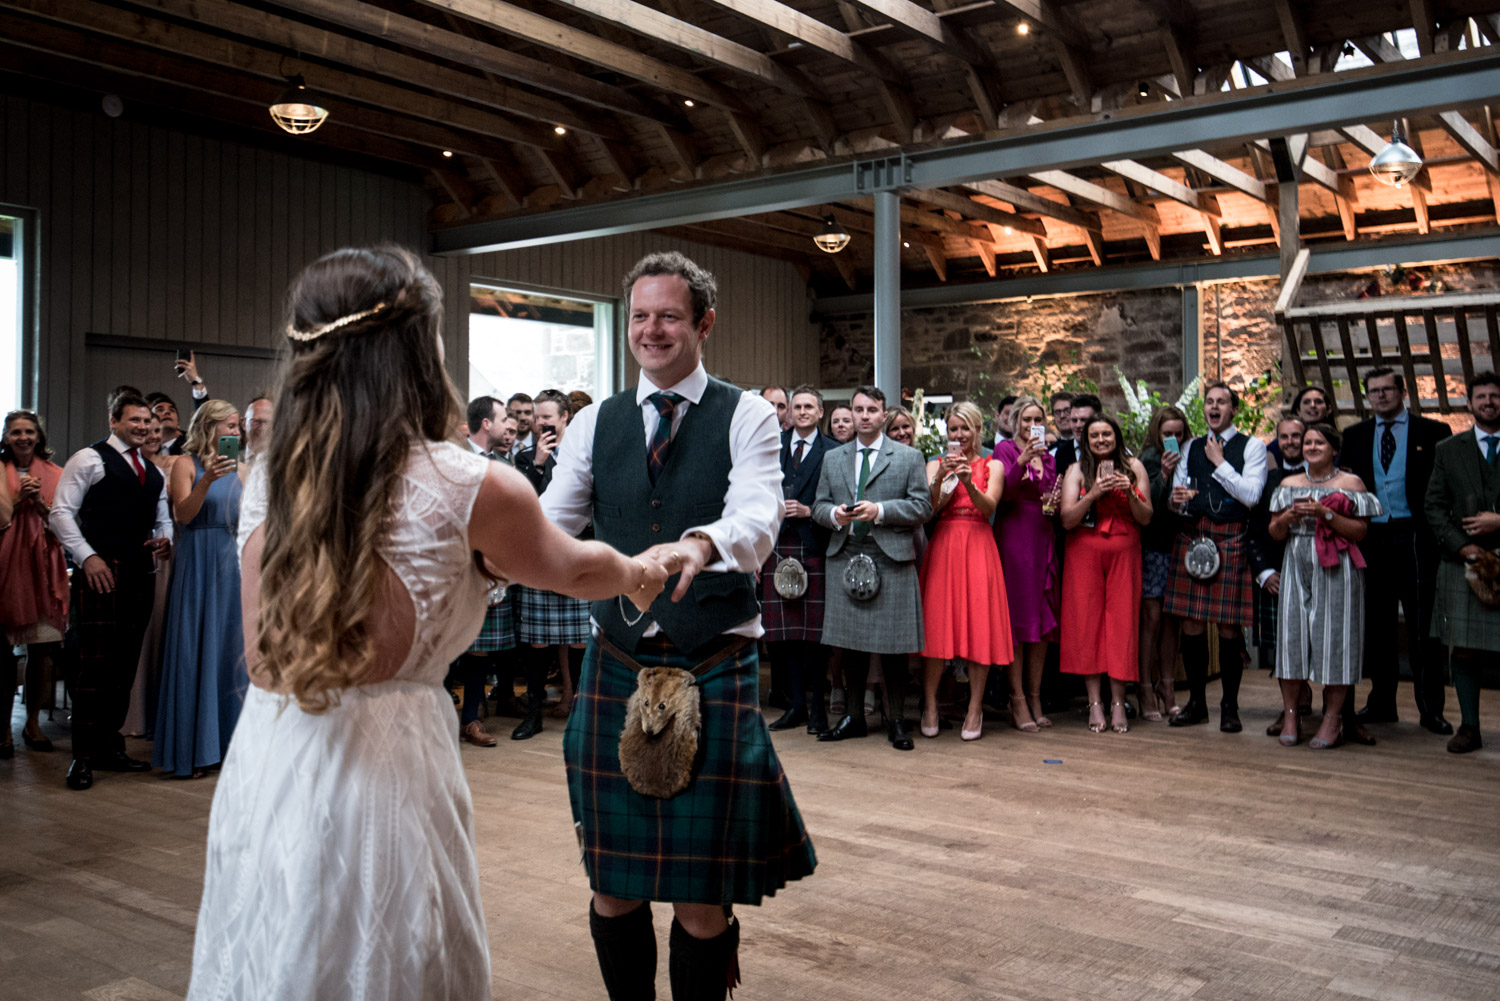 Documentary Wedding Photographer Edinburgh - Guardswall Farm